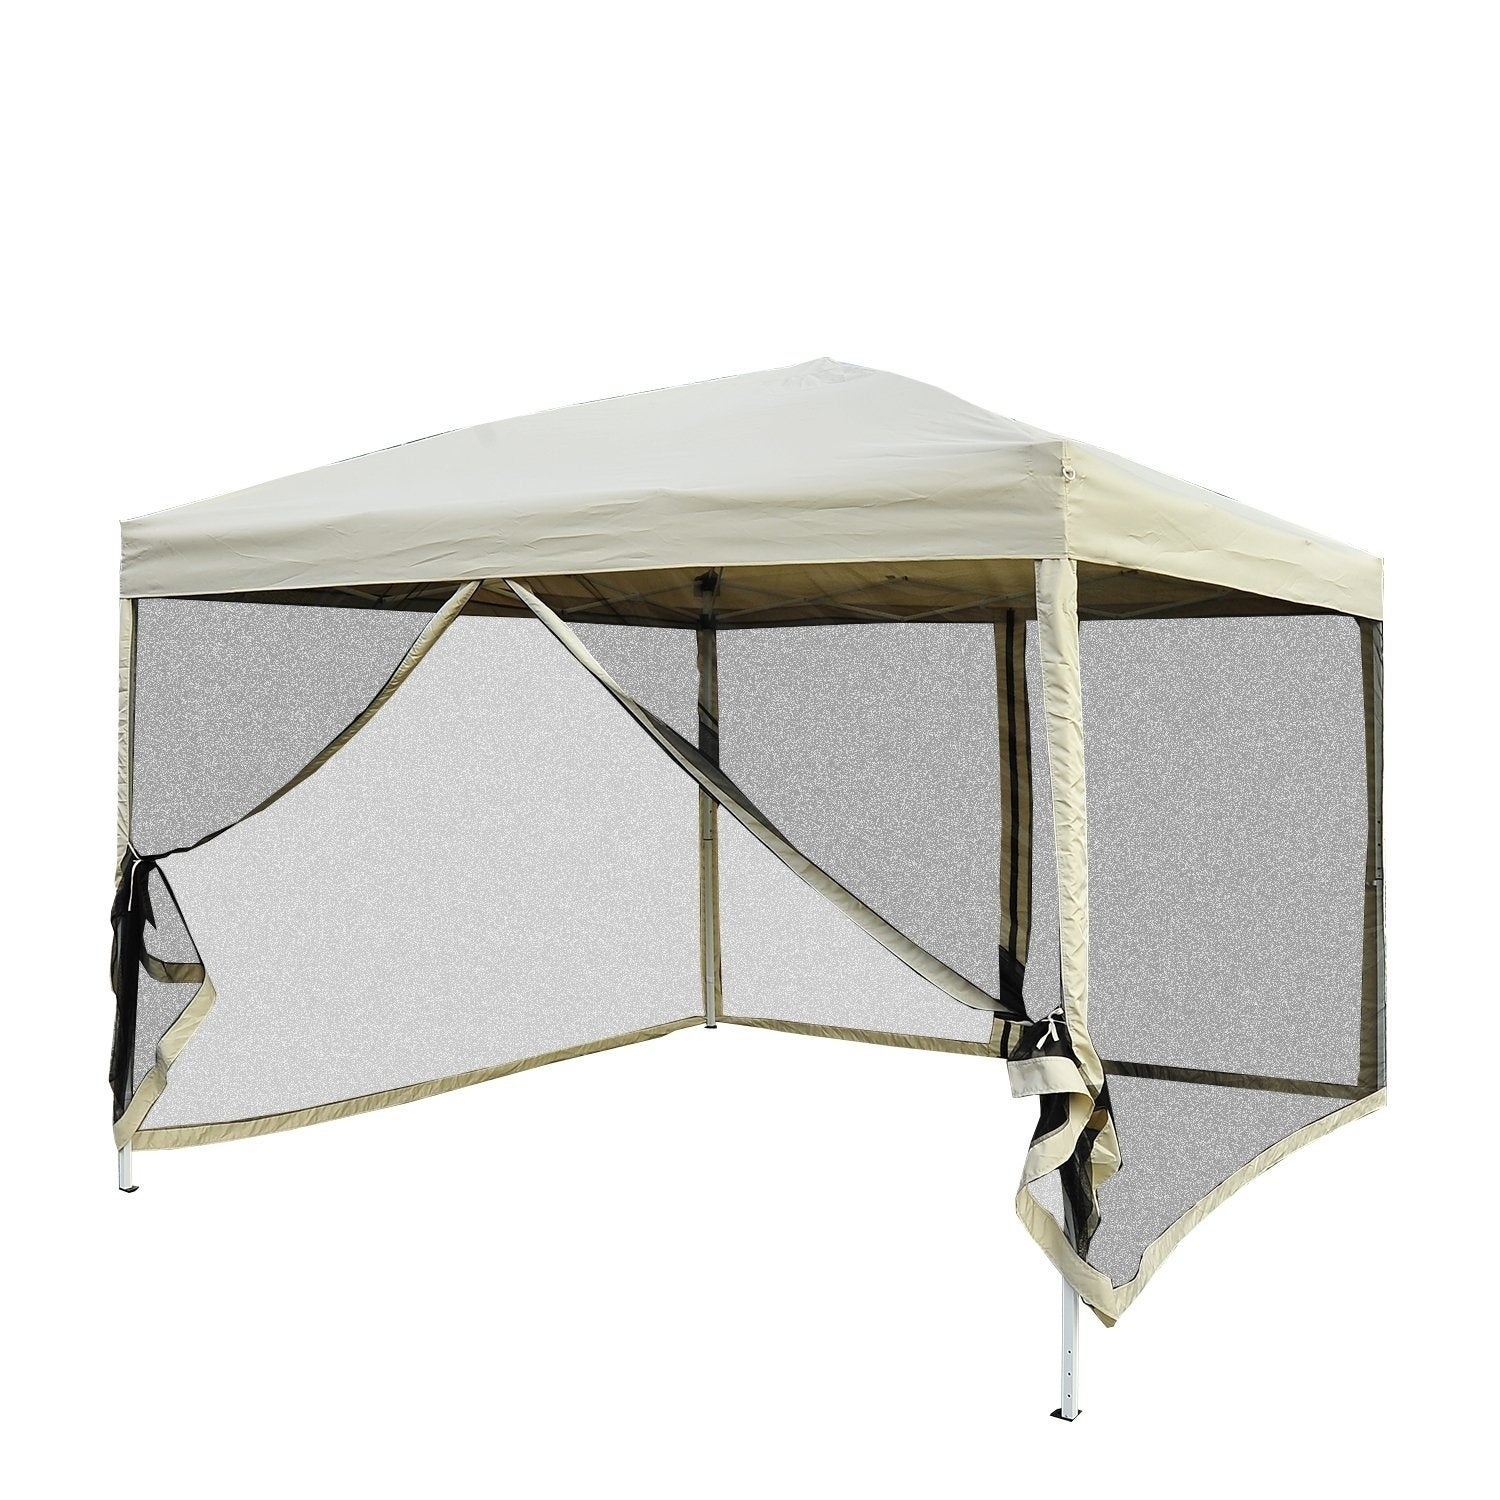 low priced 2bc80 70739 Outsunny 10' x 10' Easy Pop Up Canopy Tent with Mesh Side Walls - Tan